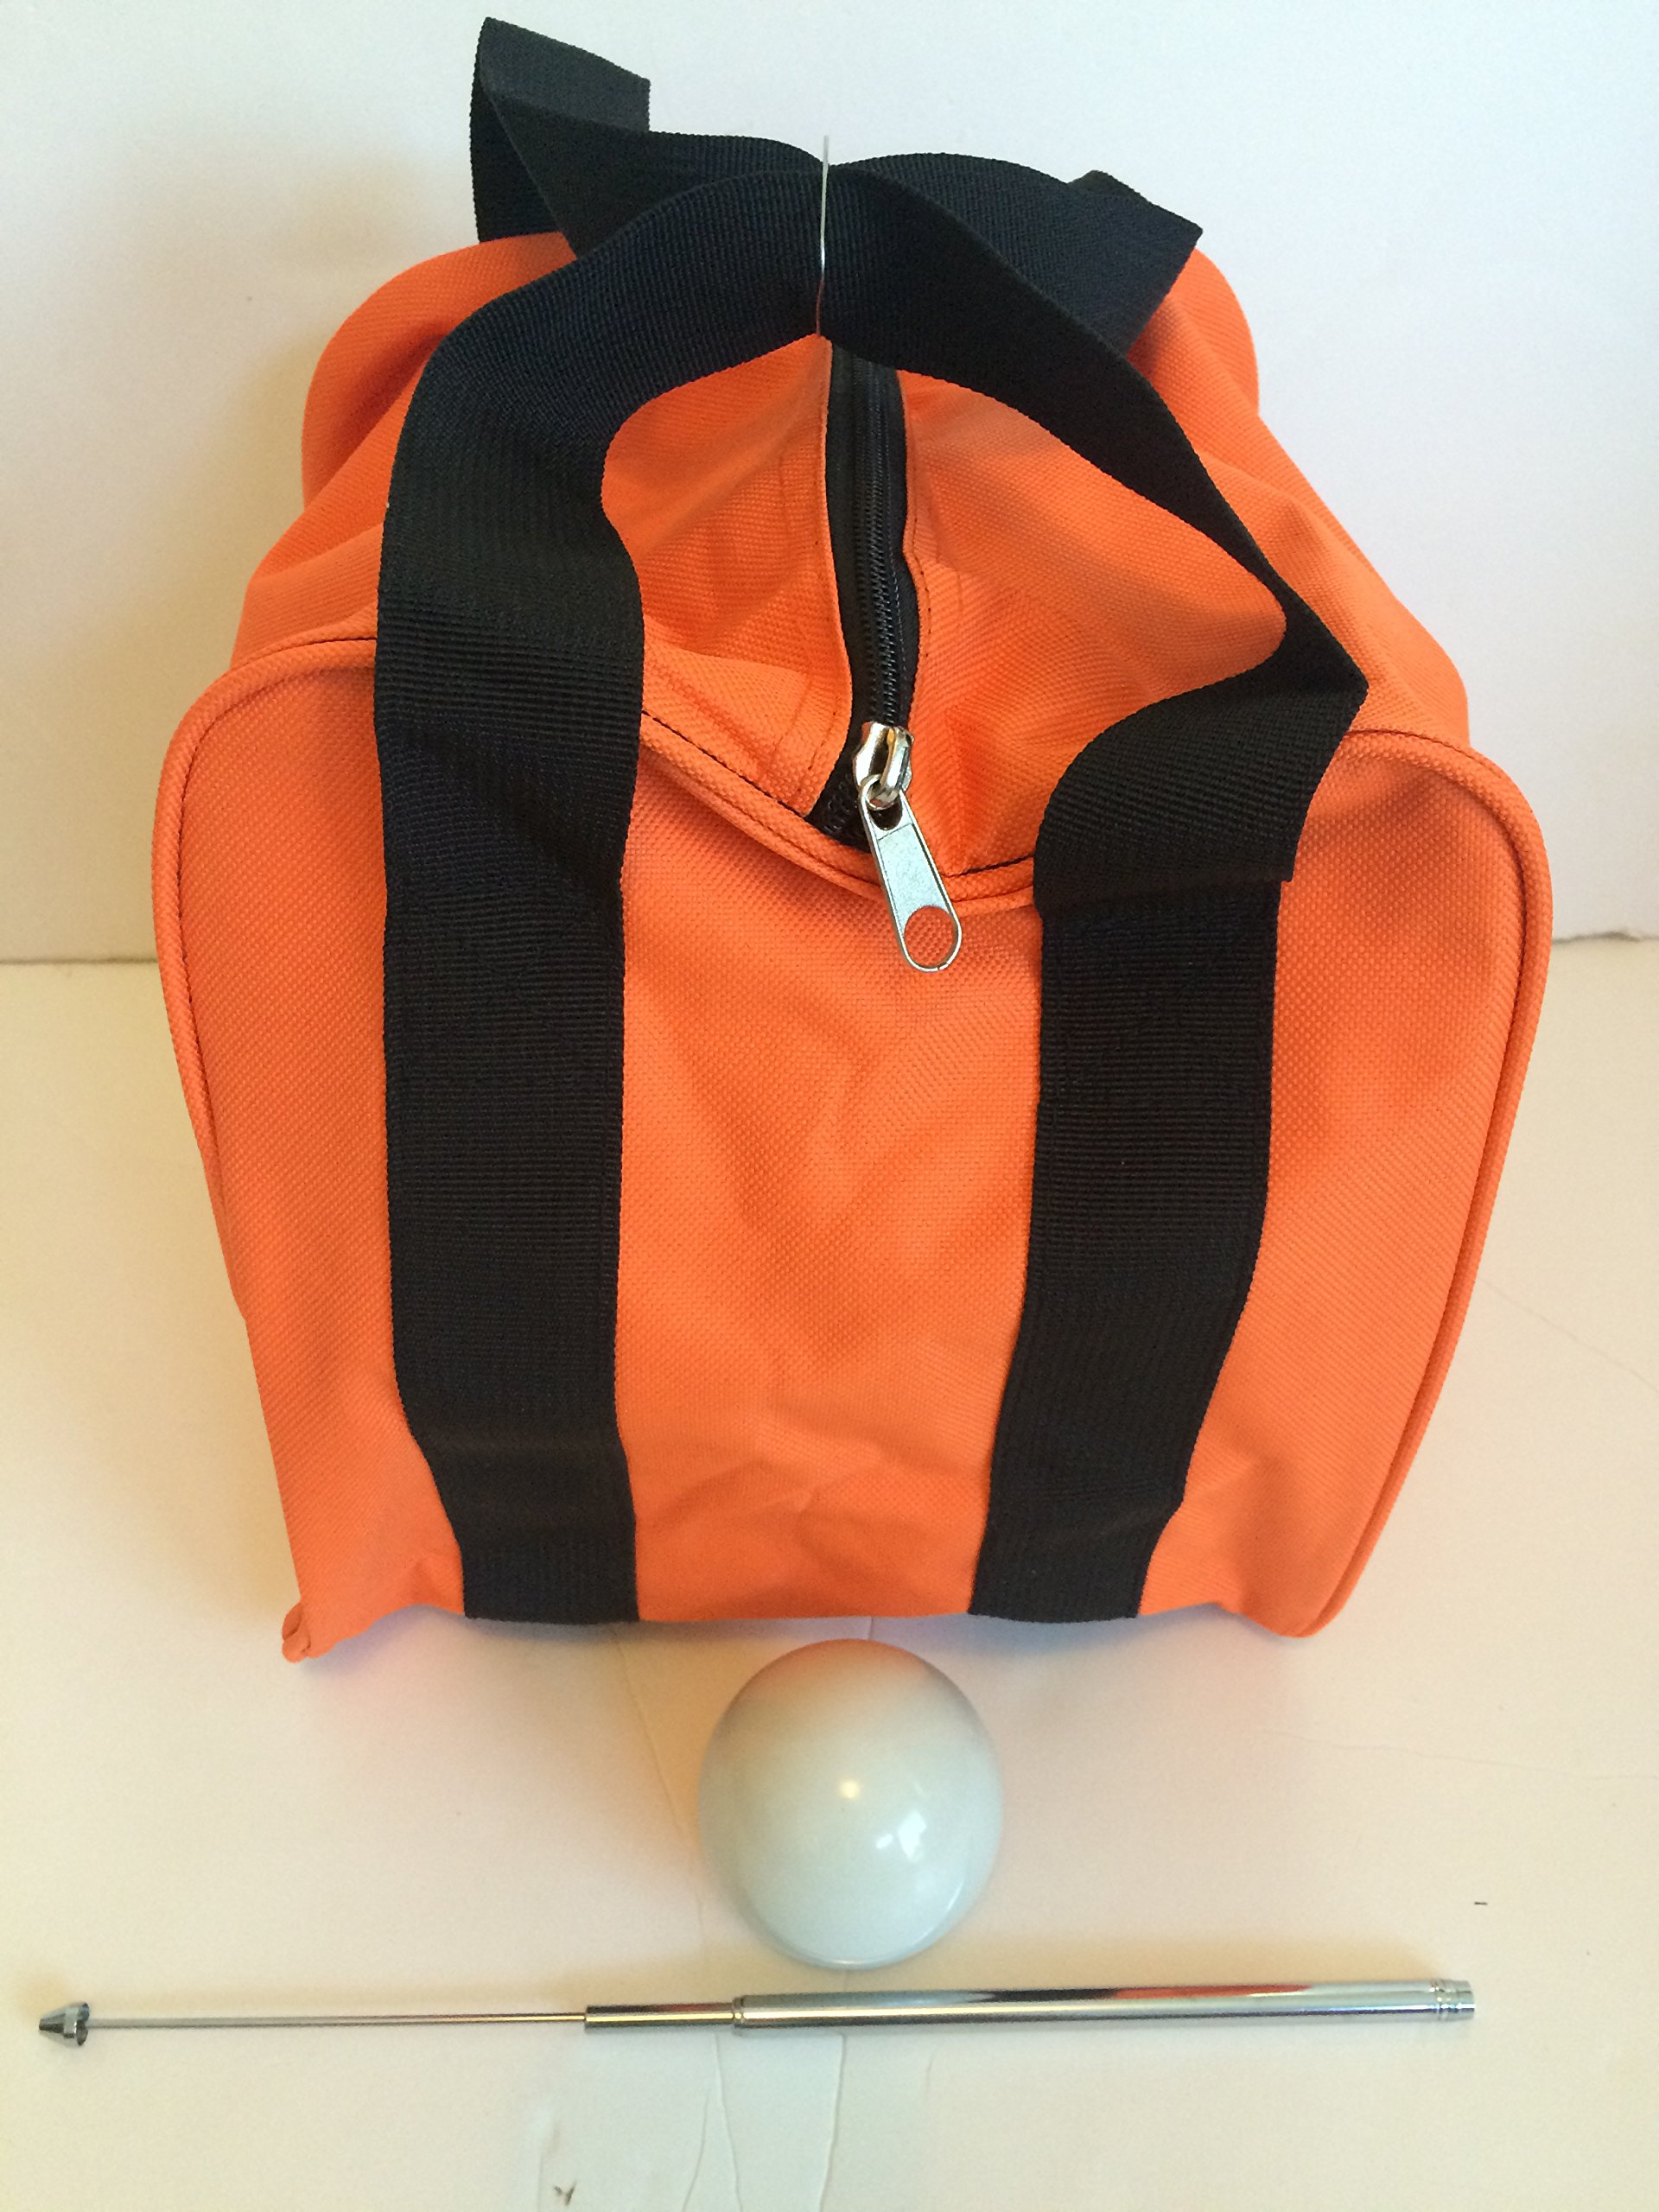 Unique Bocce Accessories Package - Extra Heavy Duty Nylon Bocce Bag (Orange with Black Handles), White pallina, Extendable Measuring Device by BuyBocceBalls